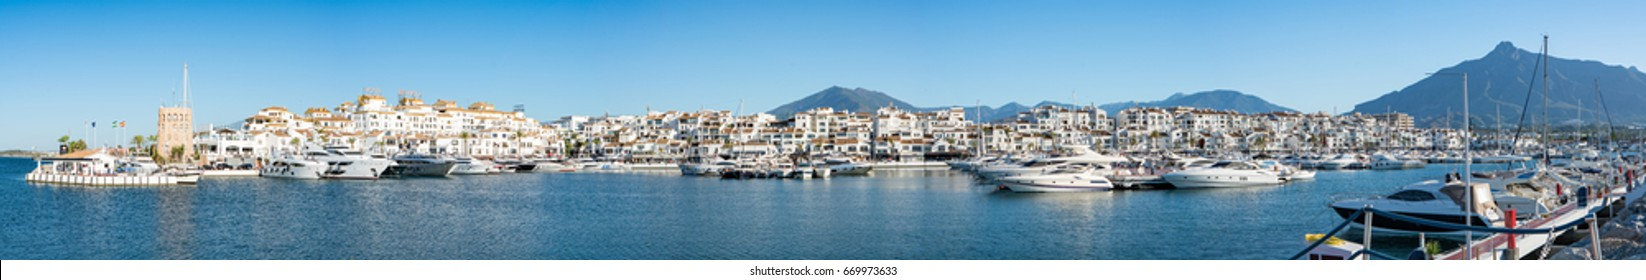 PUERTO BANUS, SPAIN 02 JULY 2017: Ultra High Definition Panorama of Puerto Banus, Marbella, Spain showing luxury yachts and motor cruisers of the rich and famous moored in the Port